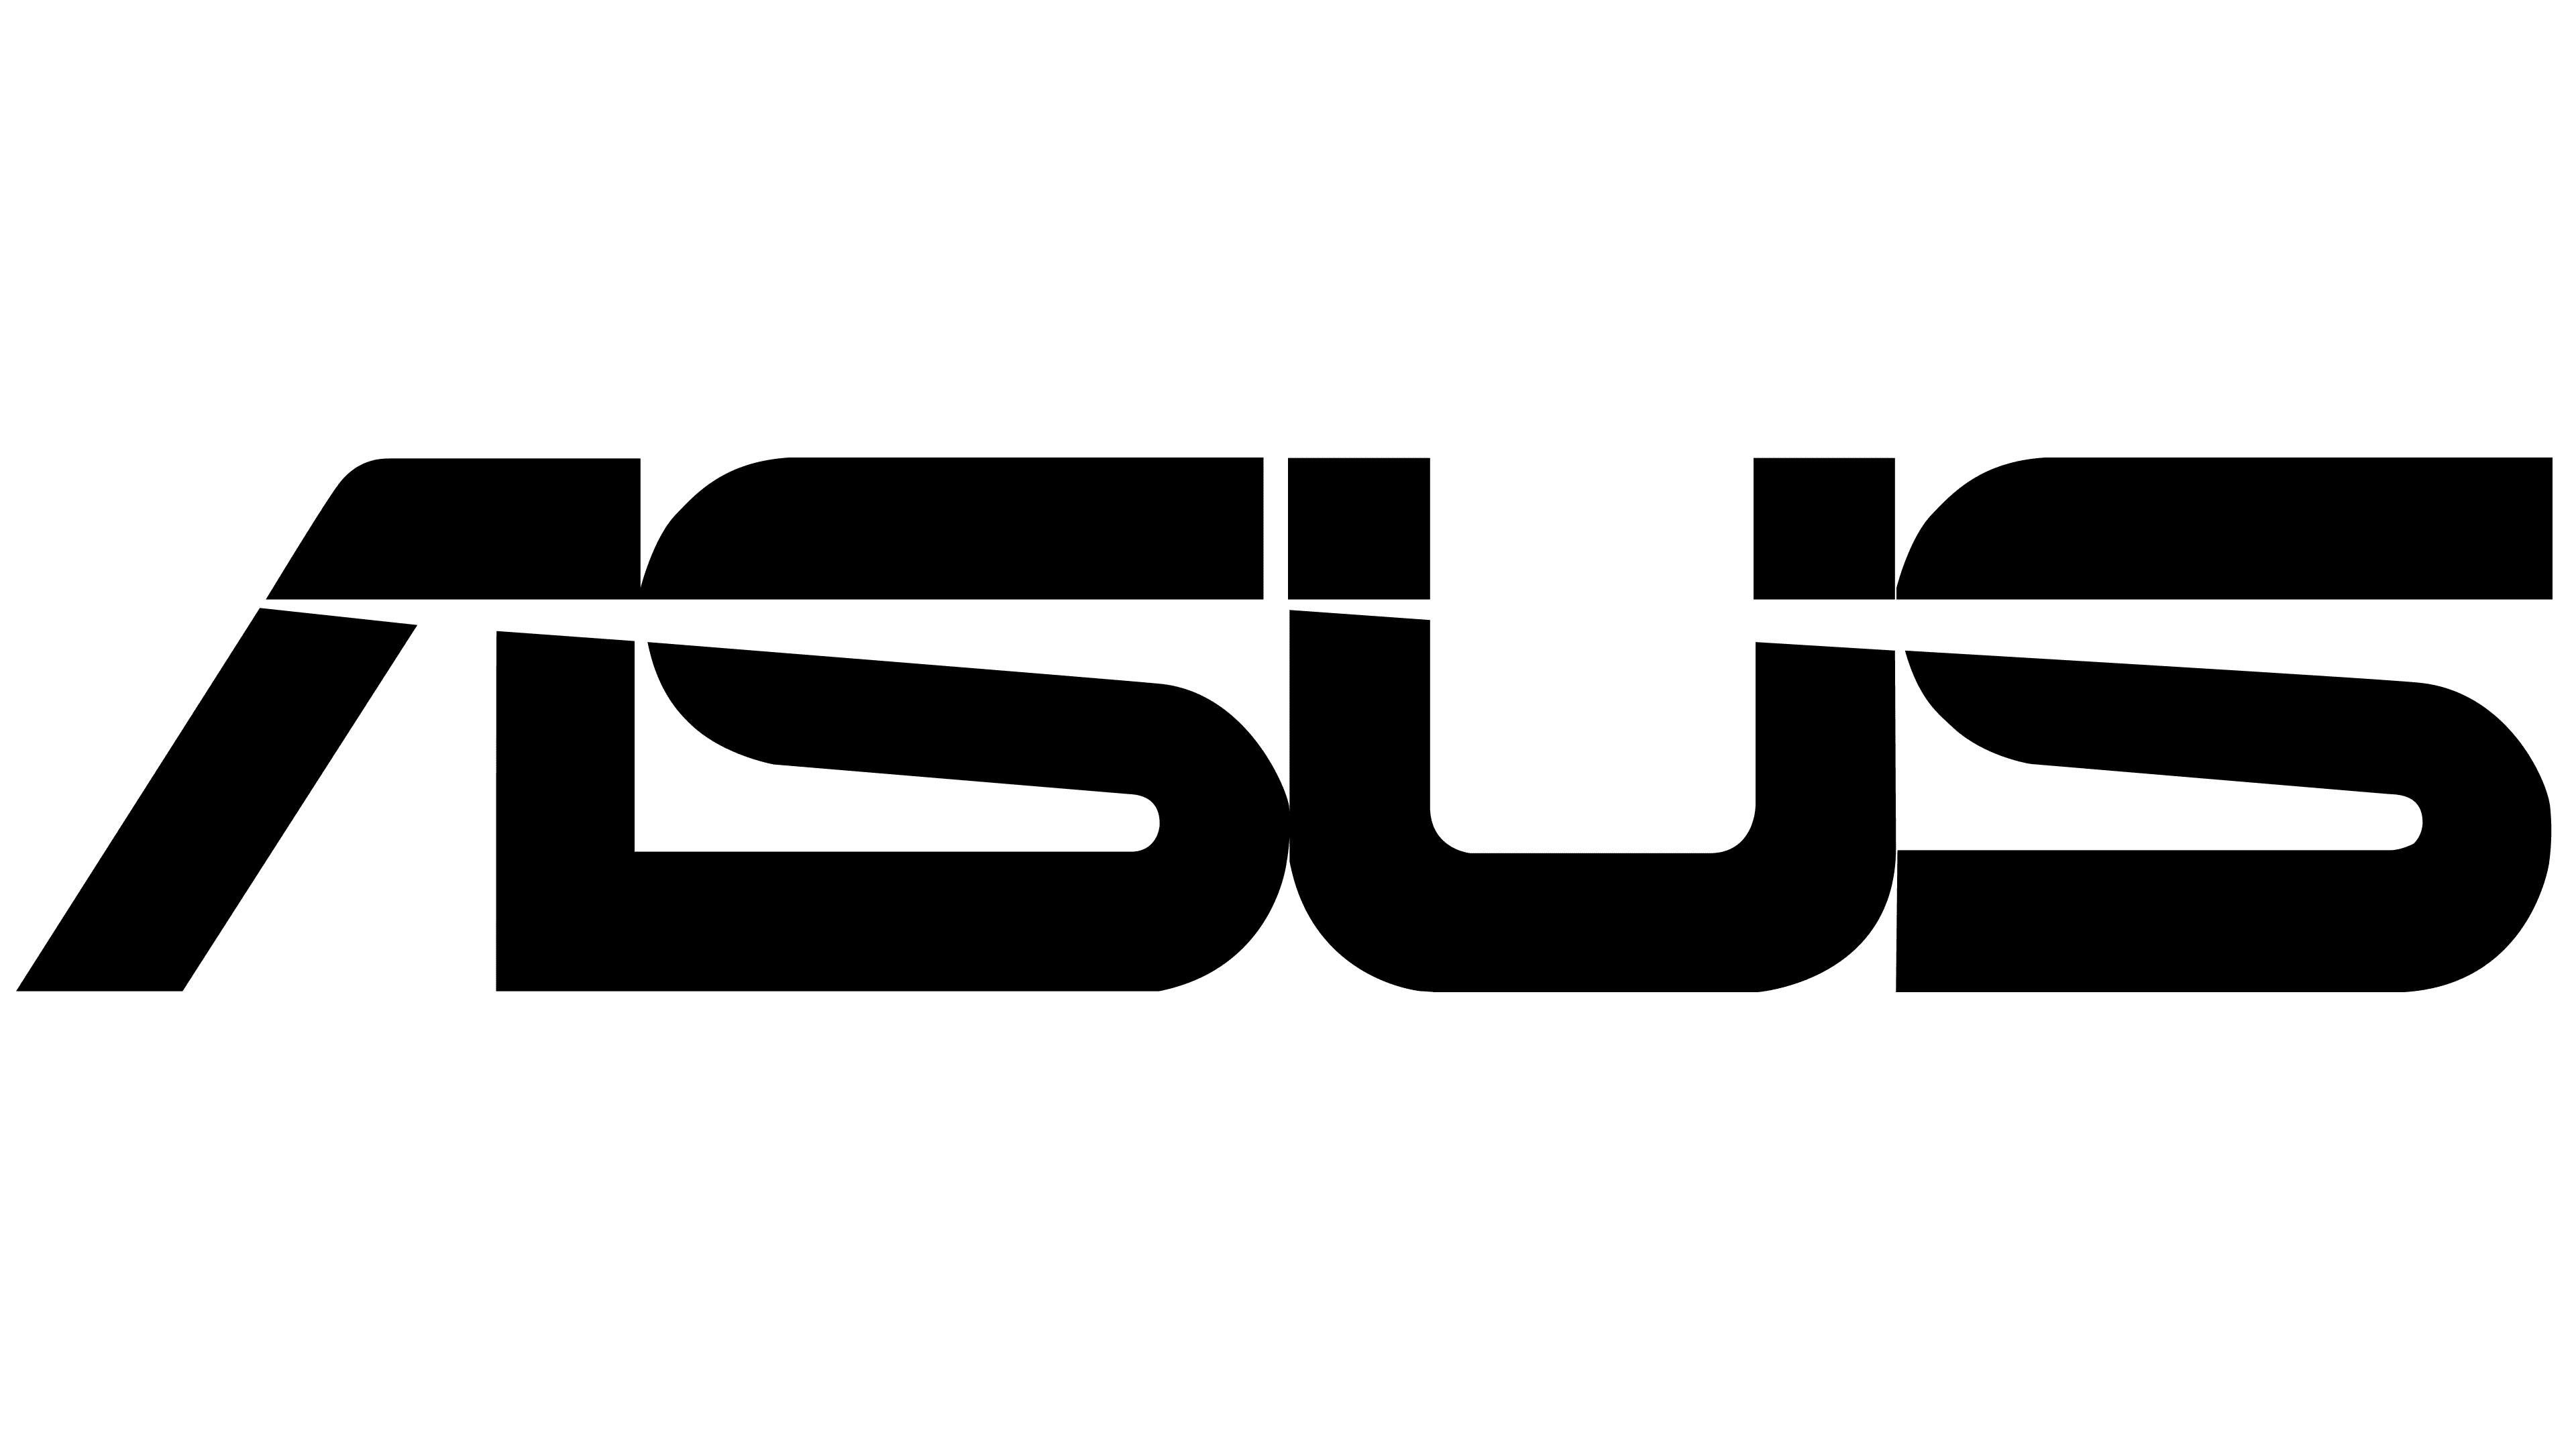 Asus Logo | The most famous brands and company logos in the world